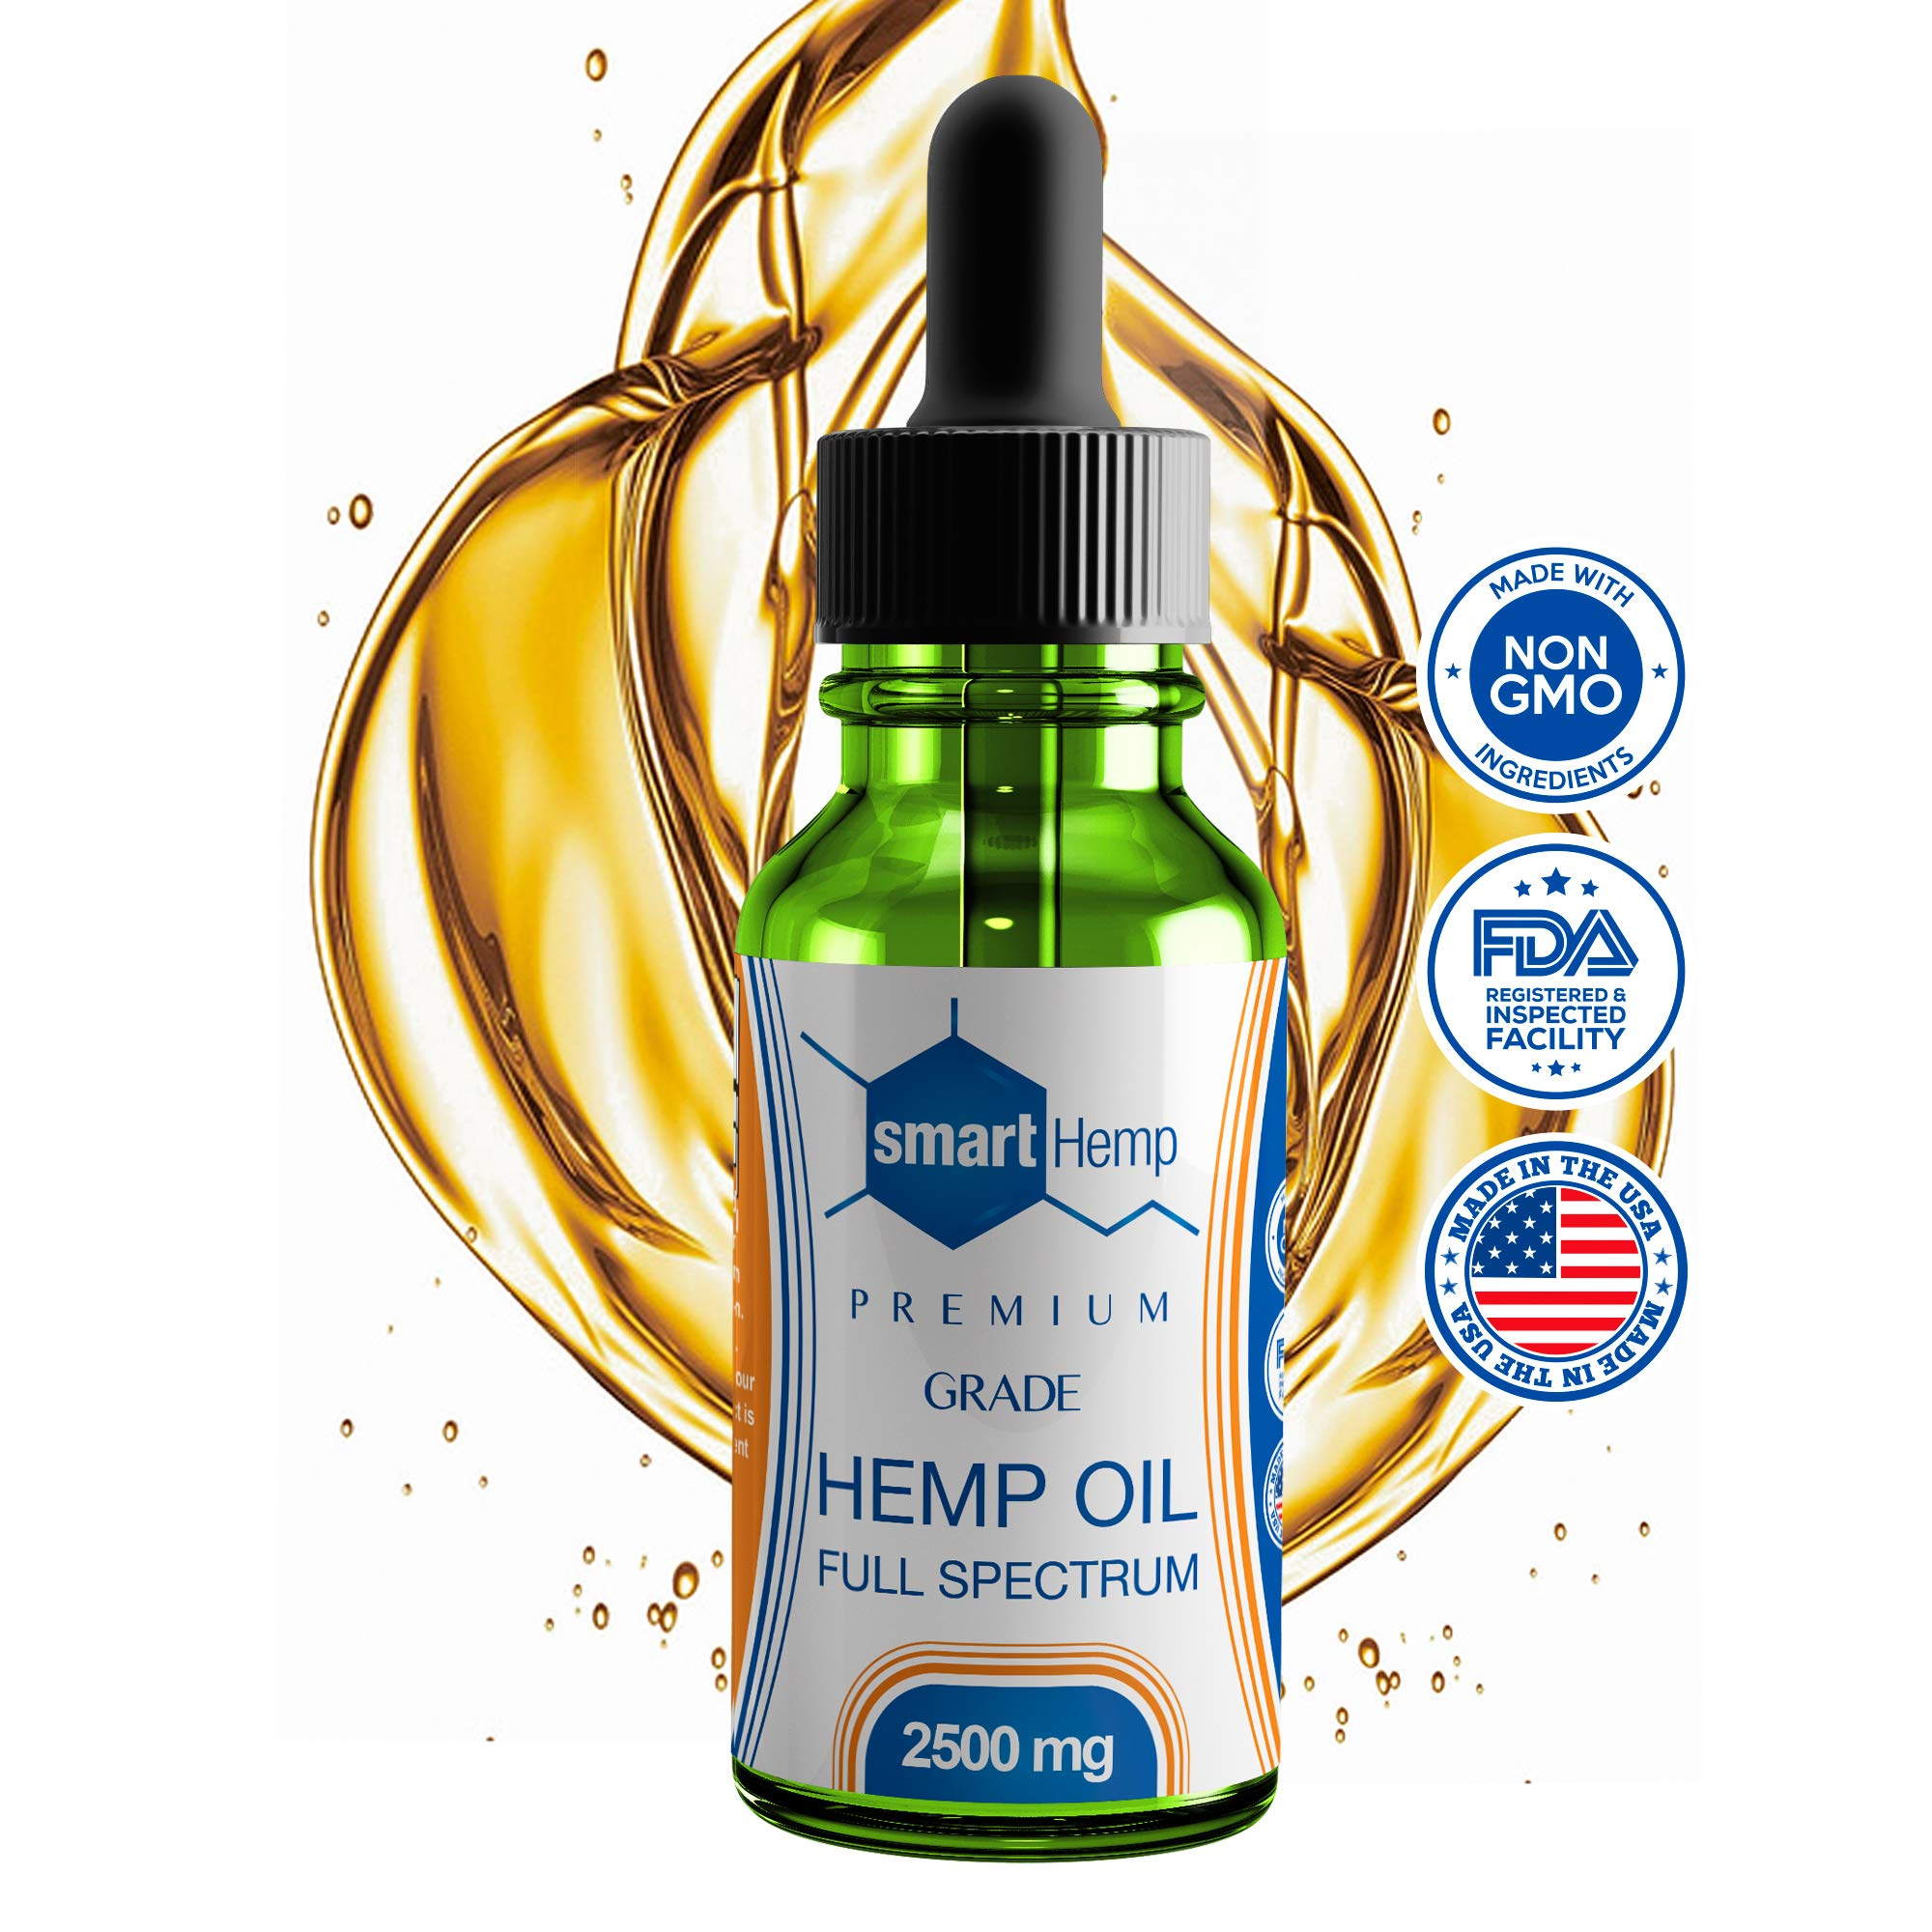 Hemp Oil Premium Grade Full Spectrum Omega-3 and Omega-6 All Natural for Pain and Stress Relief, Sleep, Anxiety (2500 mg, Peppermint)